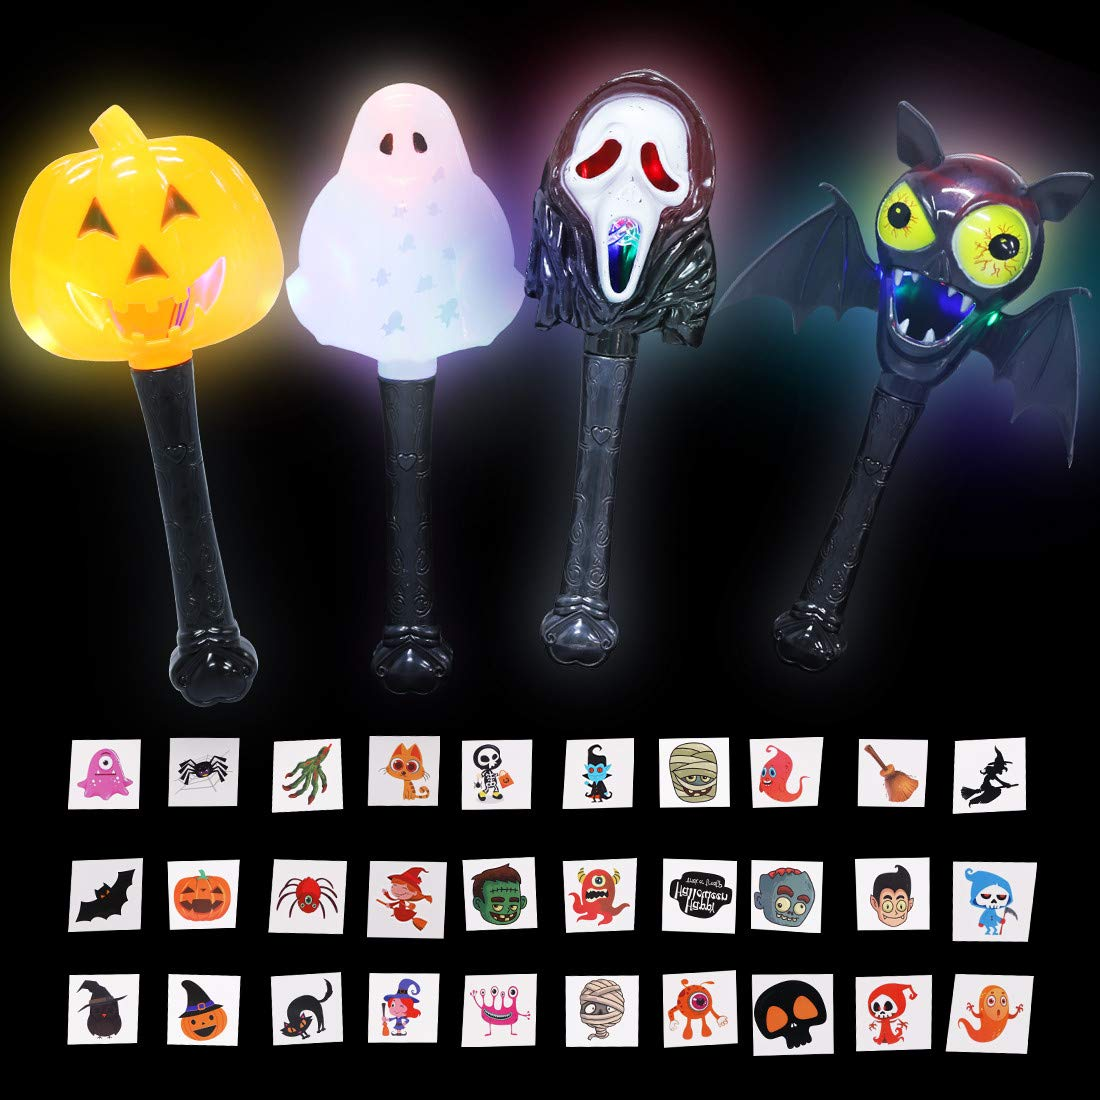 Max Fun Halloween LED Light Up Wands Flashing Magic Glow in The Dark Stick Wand Toy - 4 Pack Novelty Spooky Pumpkin Ghost Bat Witch's Face Wand & 30 Pcs Halloween Tattoos for Kid Party Favor Supplies